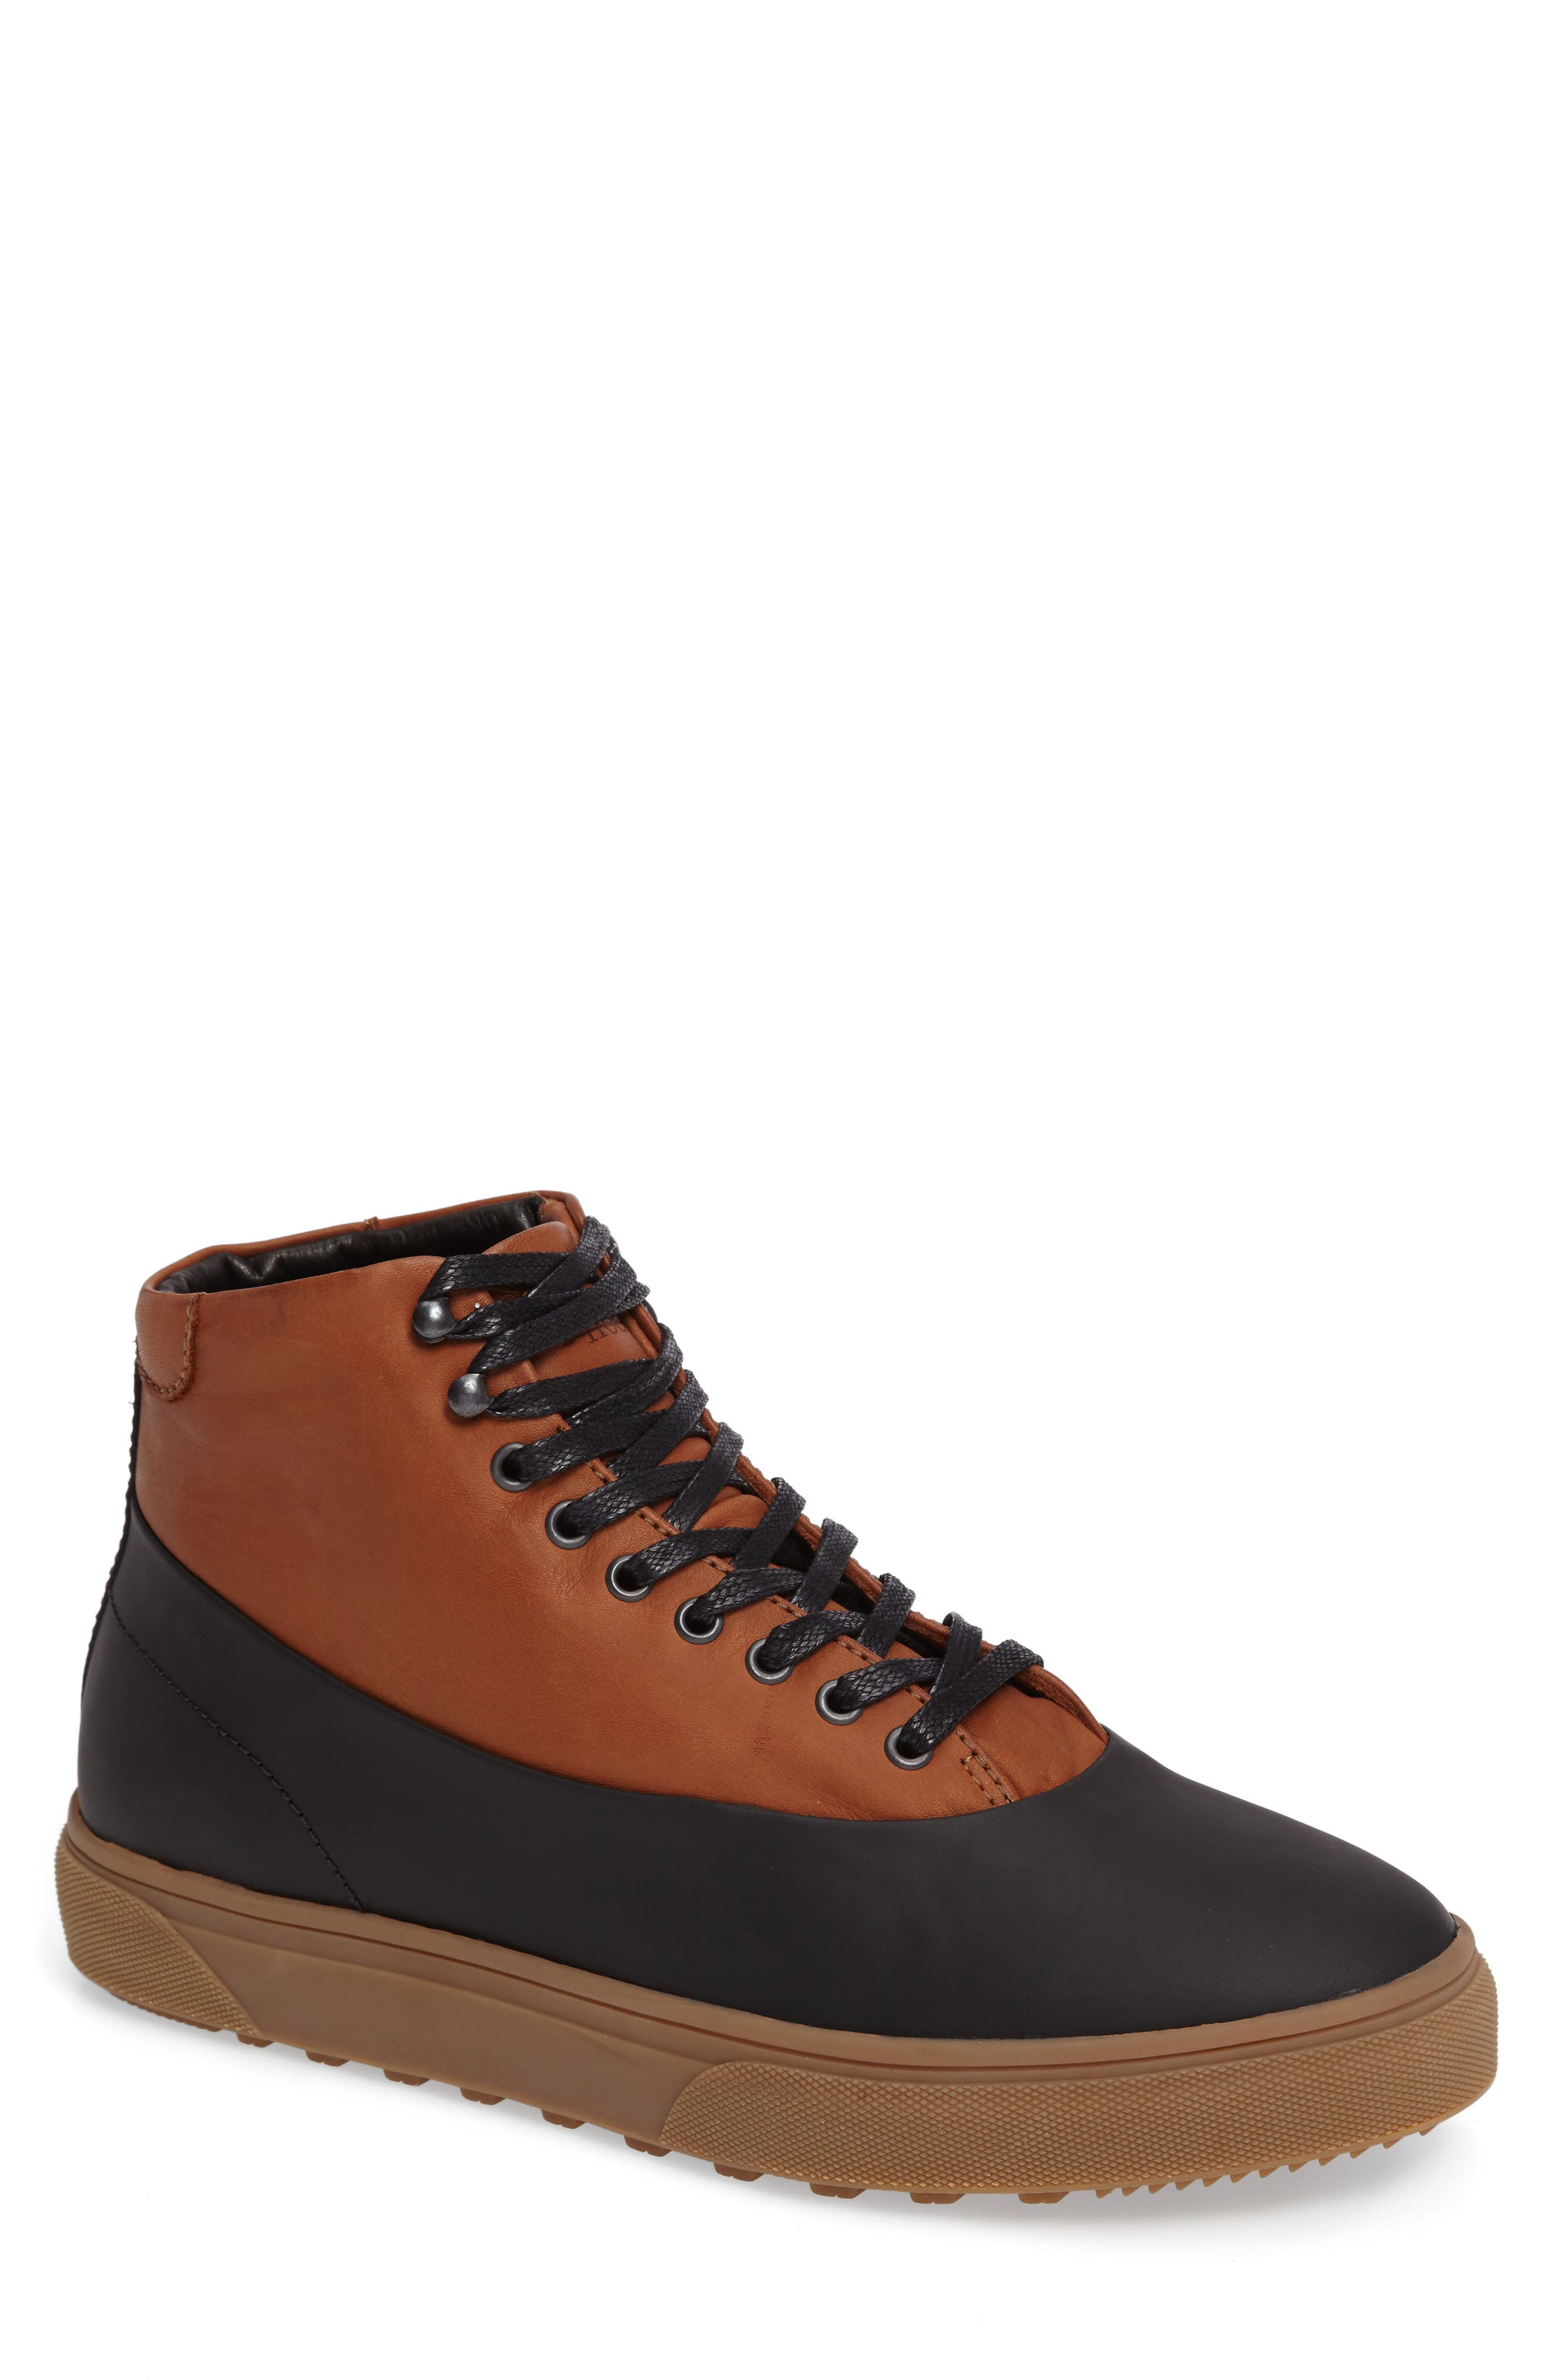 Wayland High Top Sneaker,                             Main thumbnail 2, color,